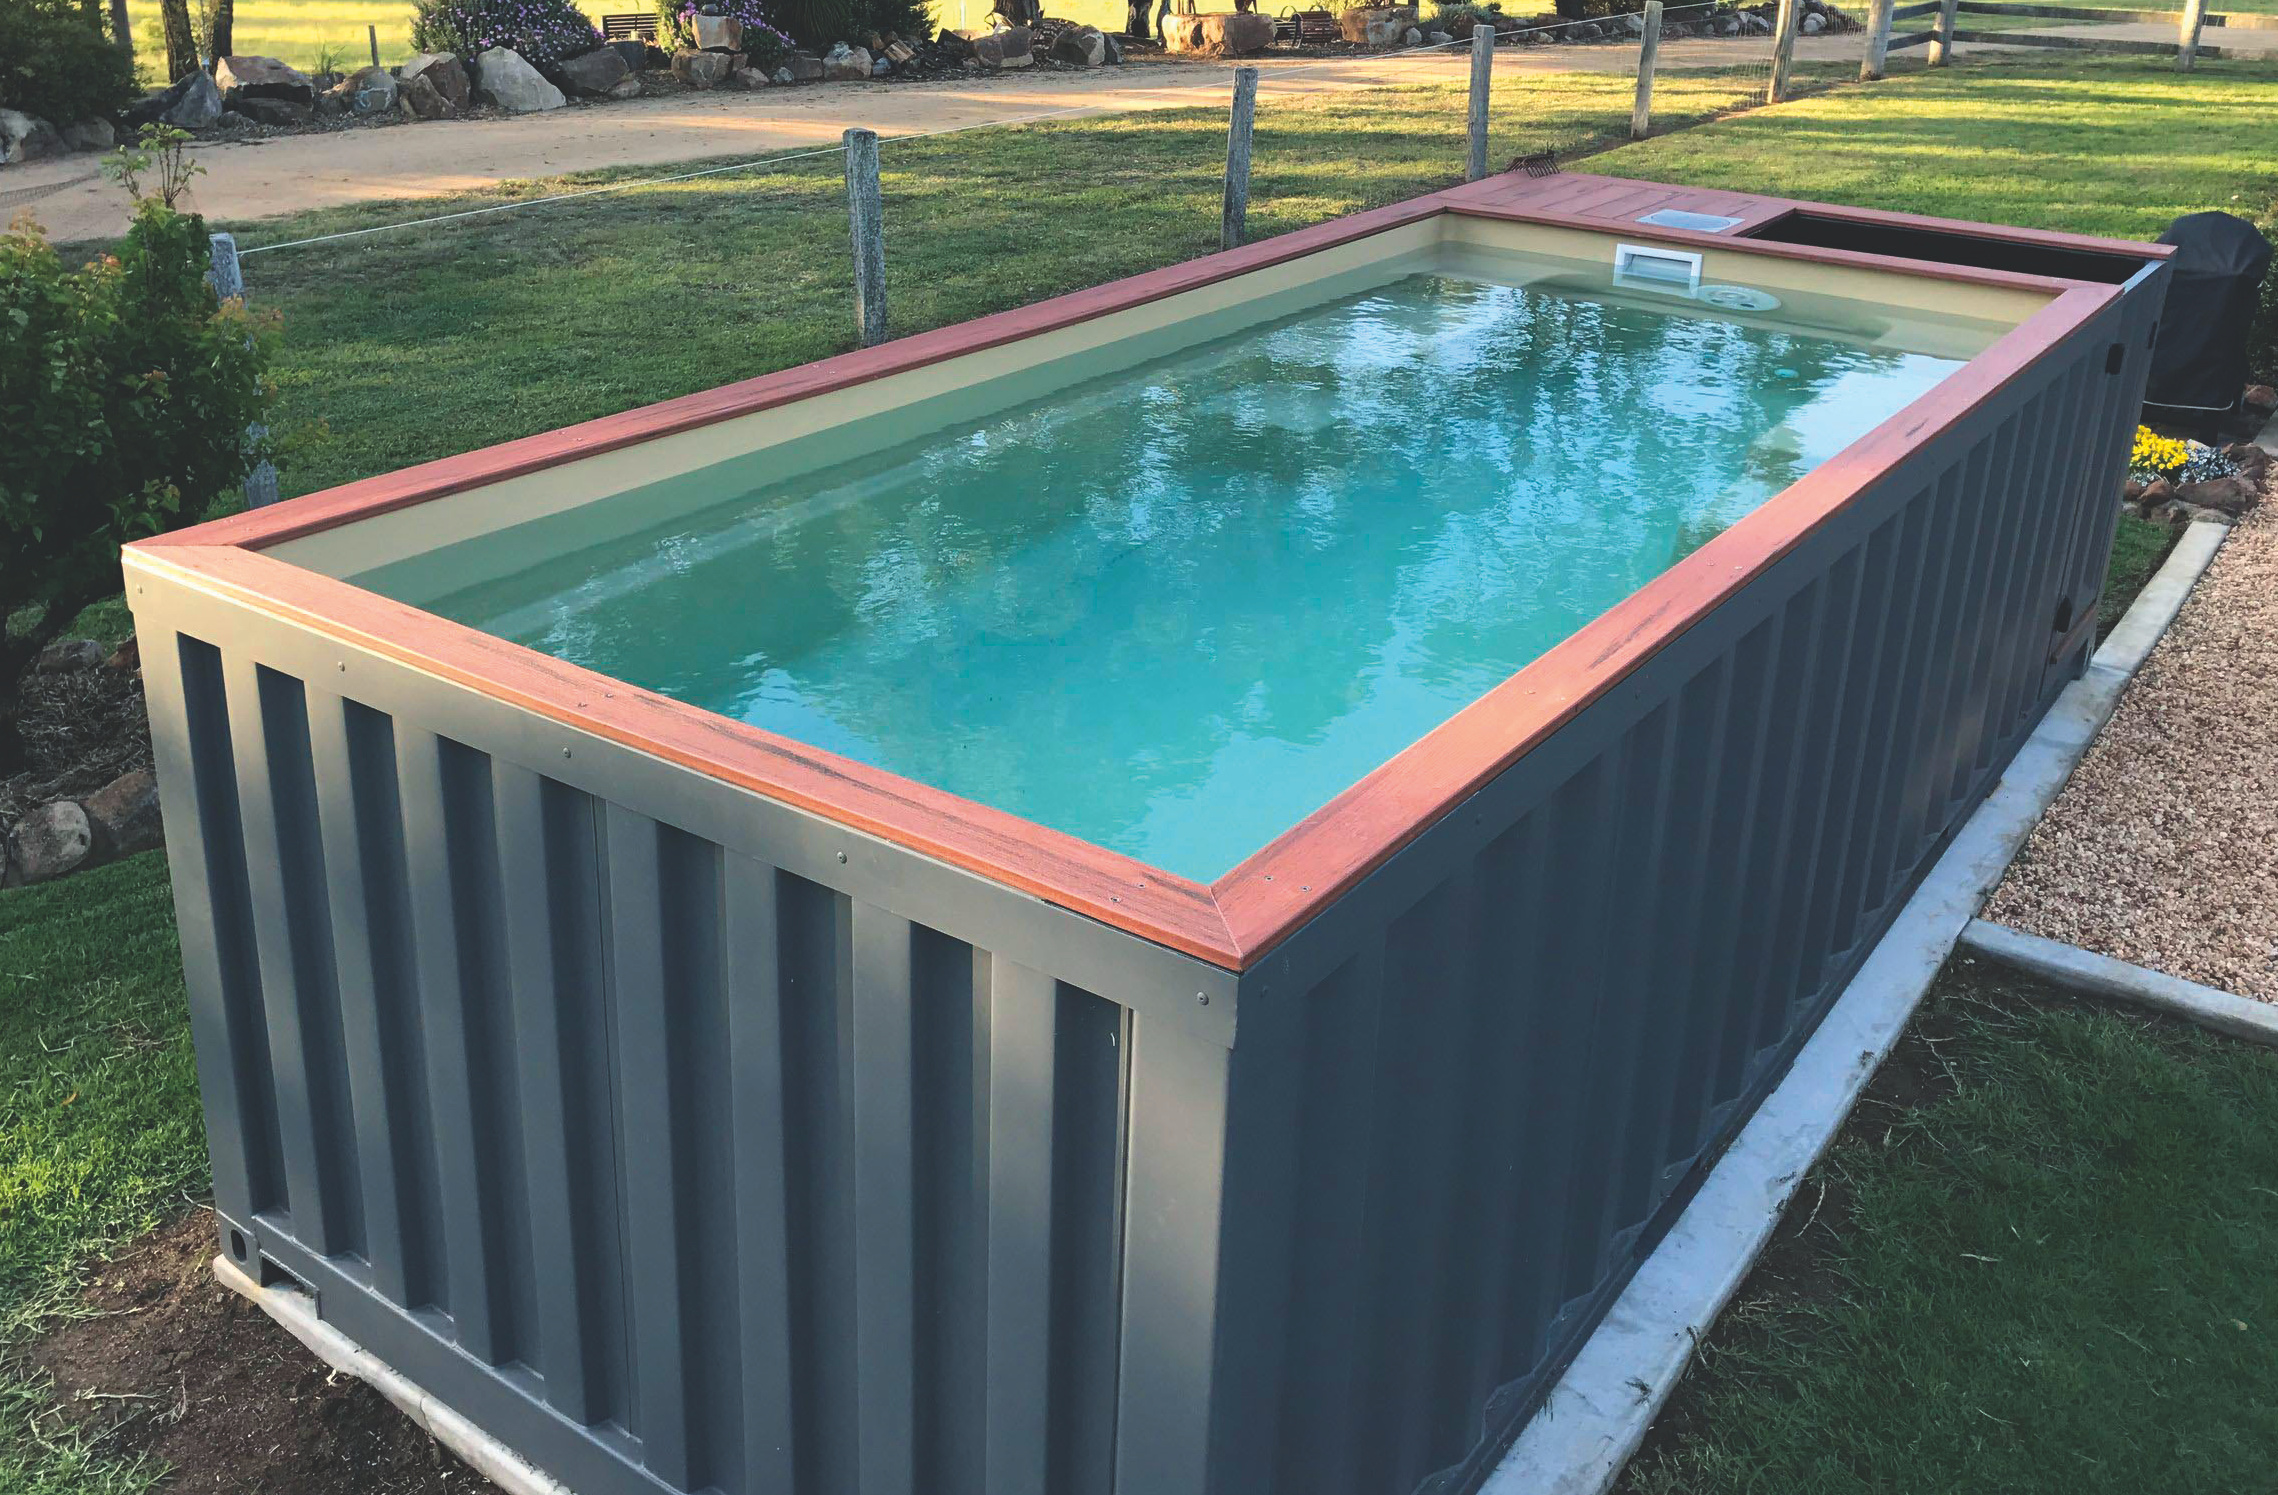 Pool Kaufen Aus Polen Container Pool Preis Shipping Container Pools 5 Quick